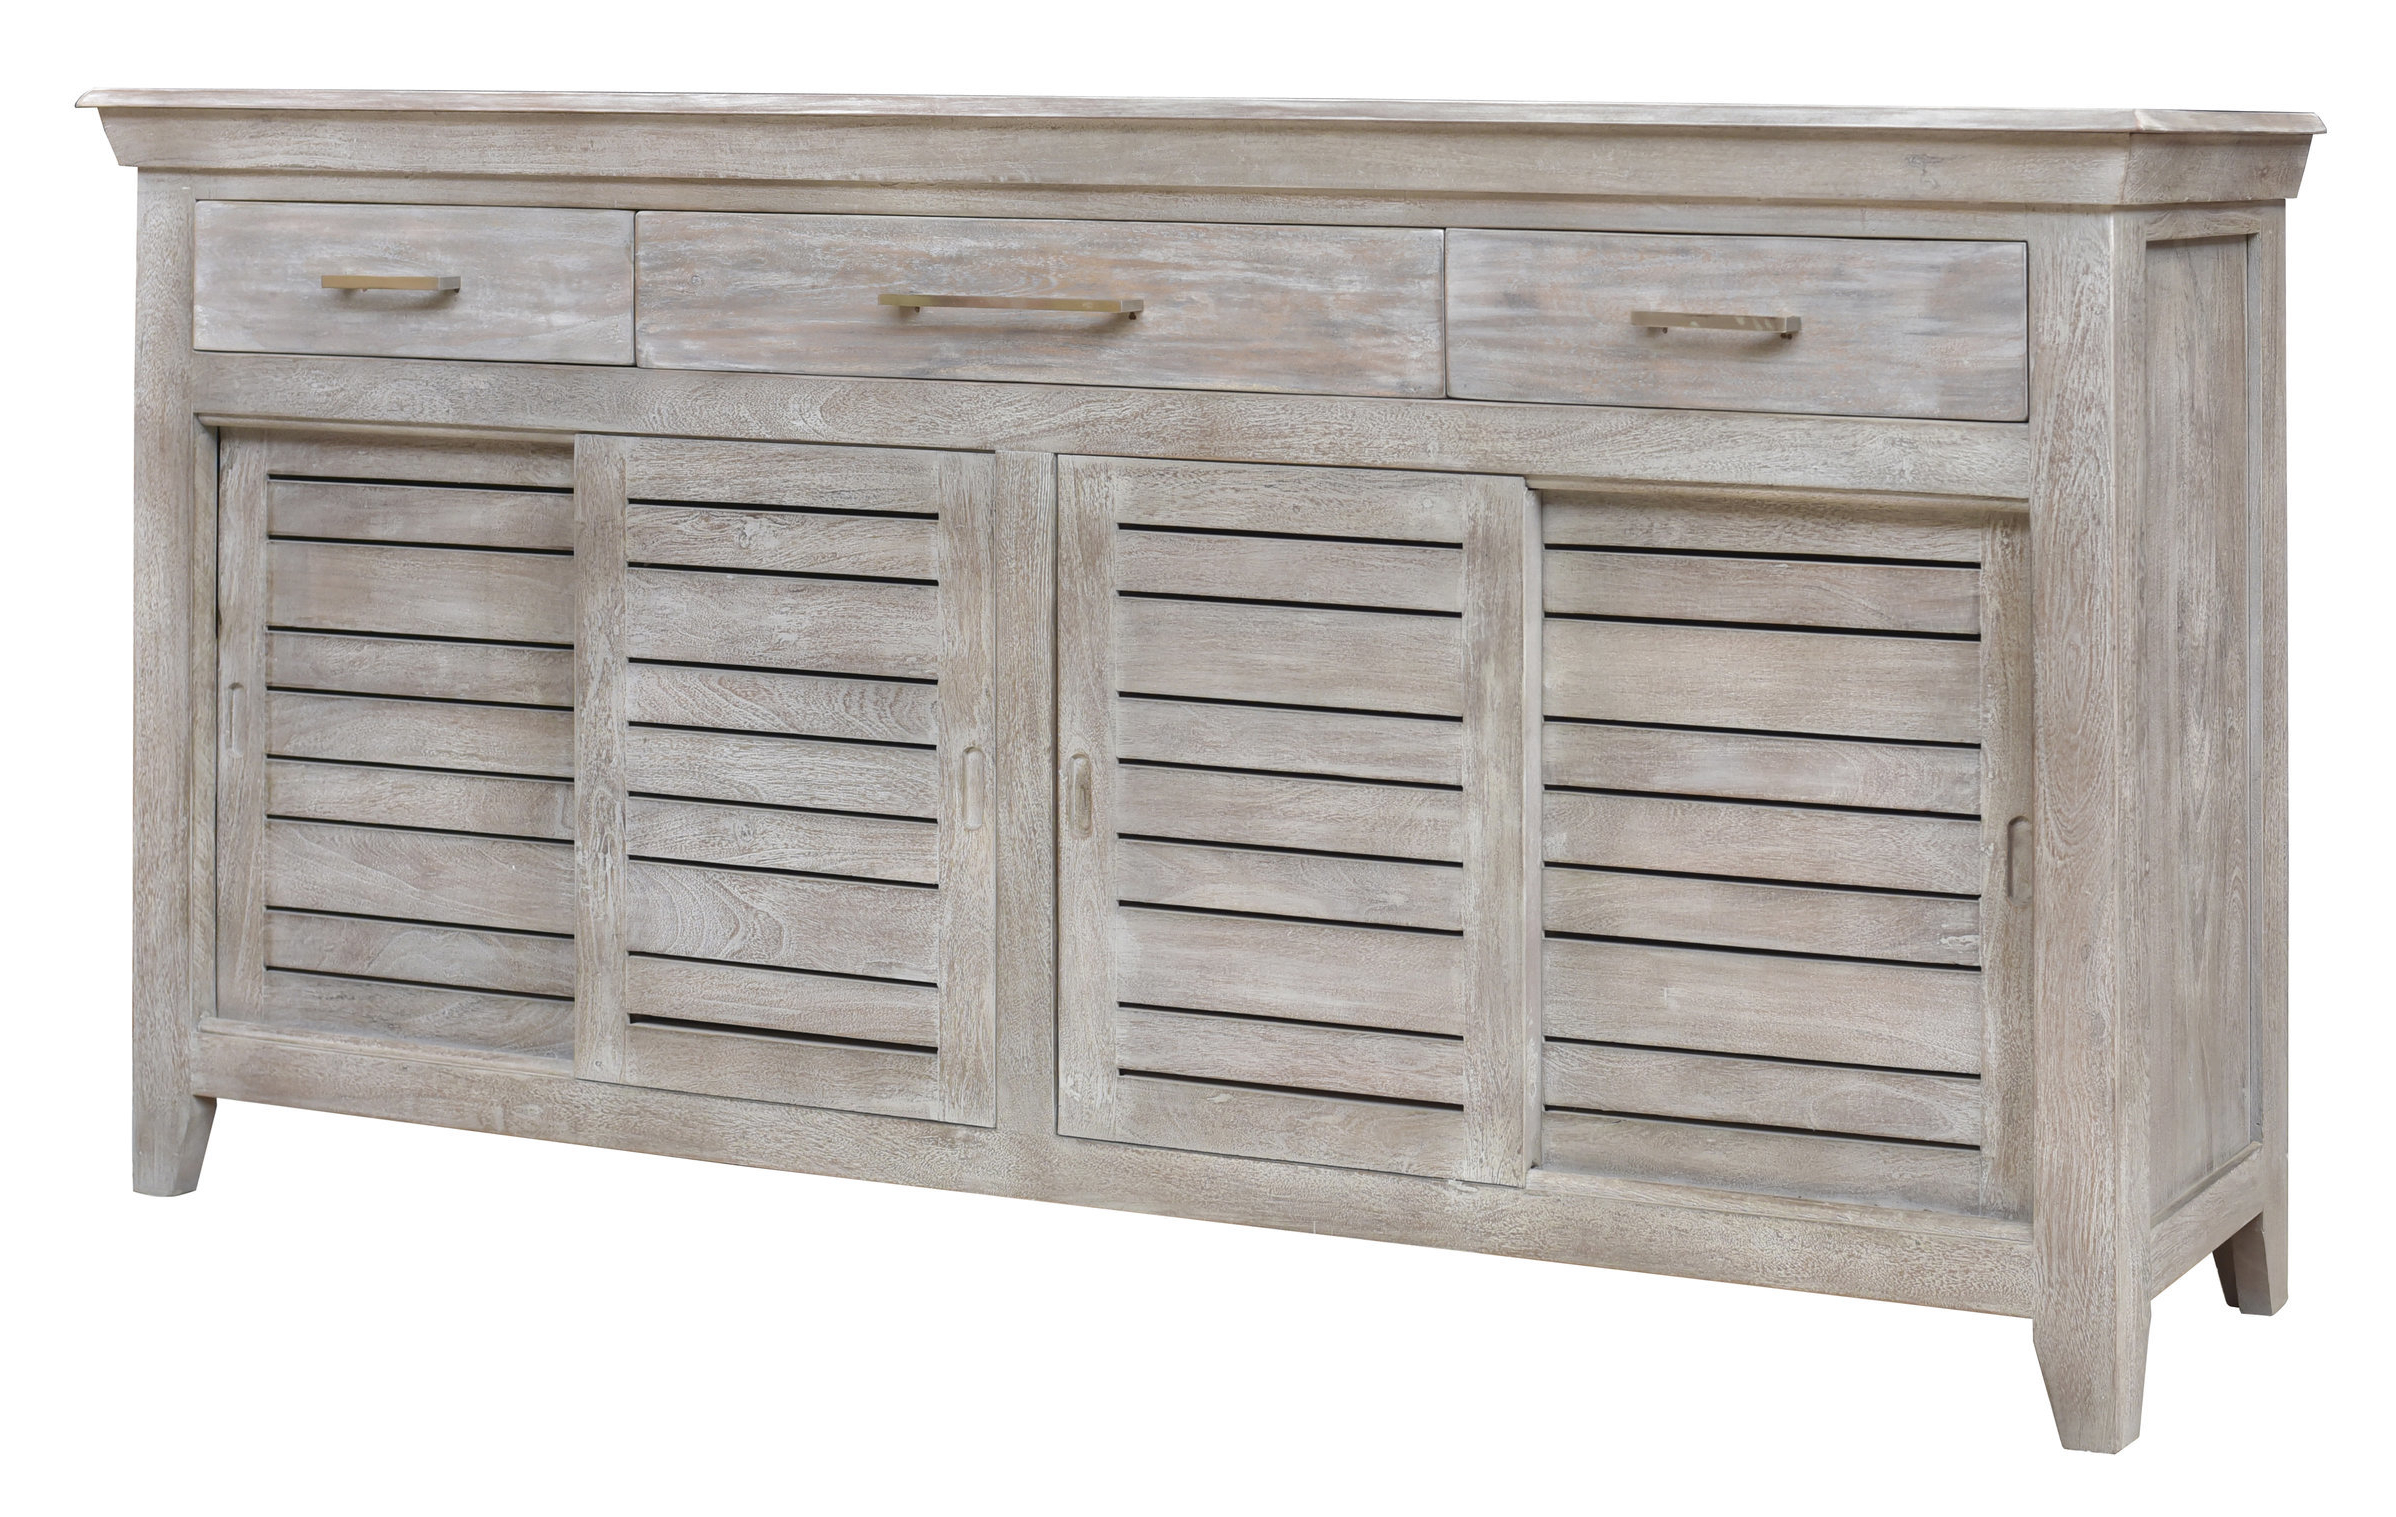 Widely Used 3 Door 3 Drawer Metal Inserts Sideboards Within Fairwinds Sideboard (View 19 of 20)